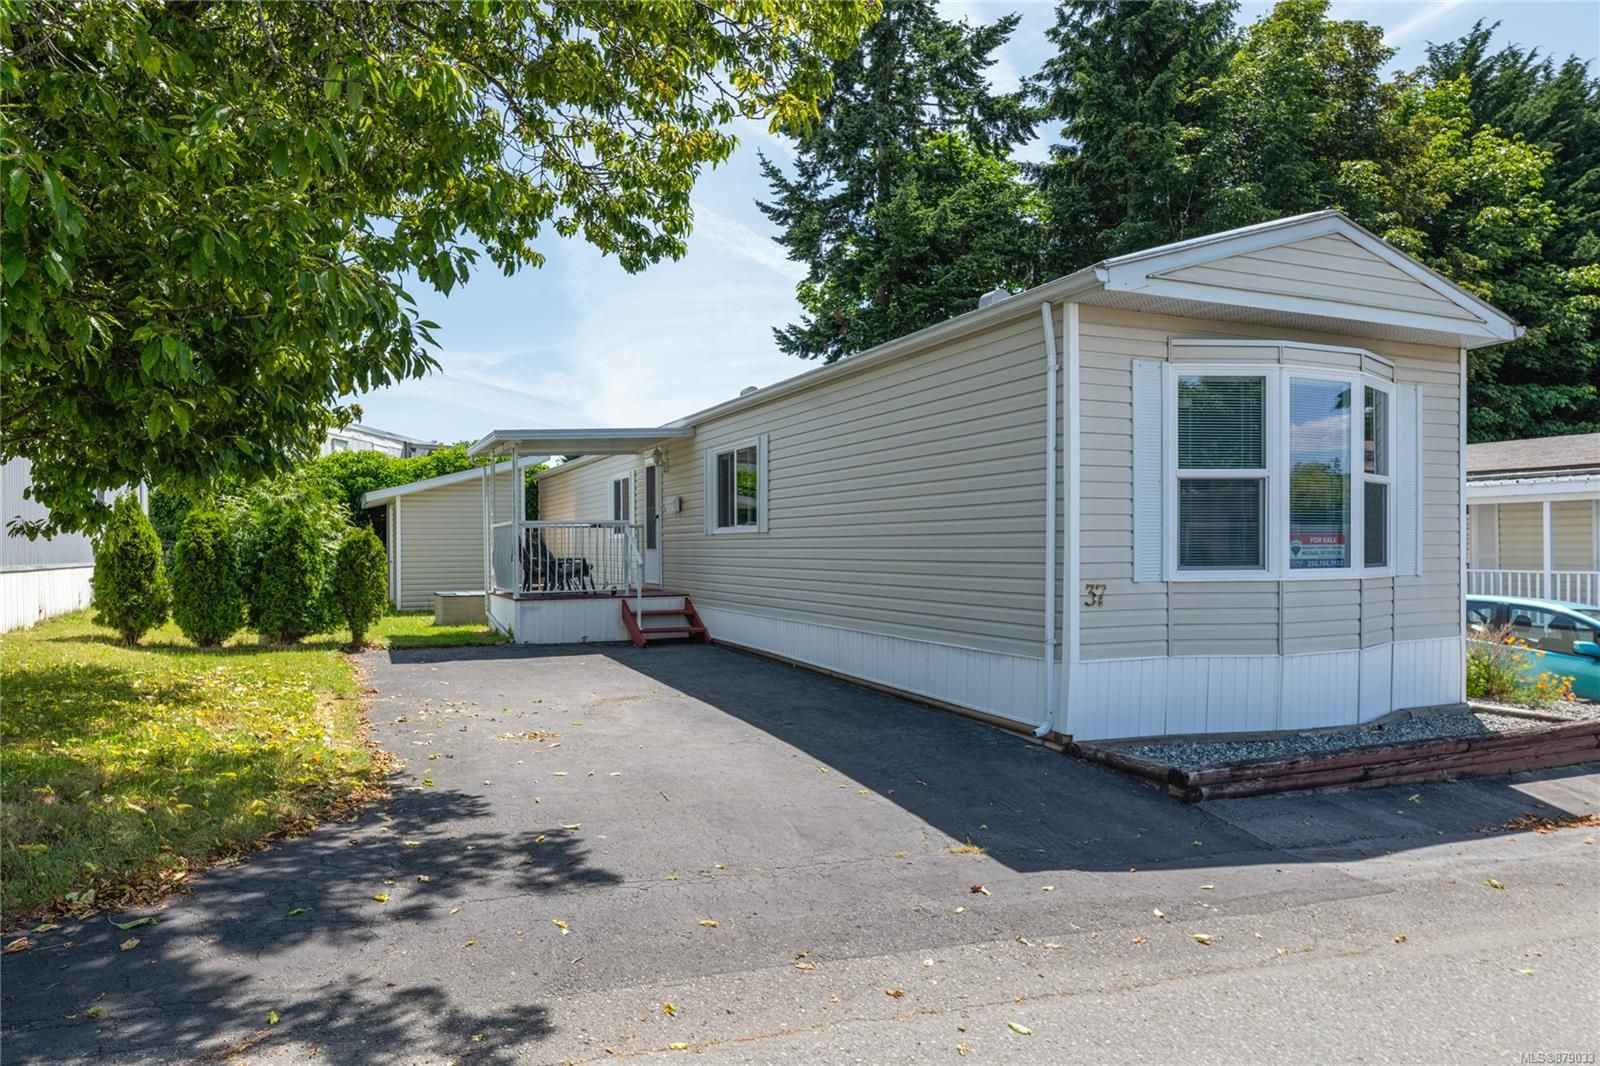 Main Photo: 37 80 Fifth St in : Na South Nanaimo Manufactured Home for sale (Nanaimo)  : MLS®# 879033